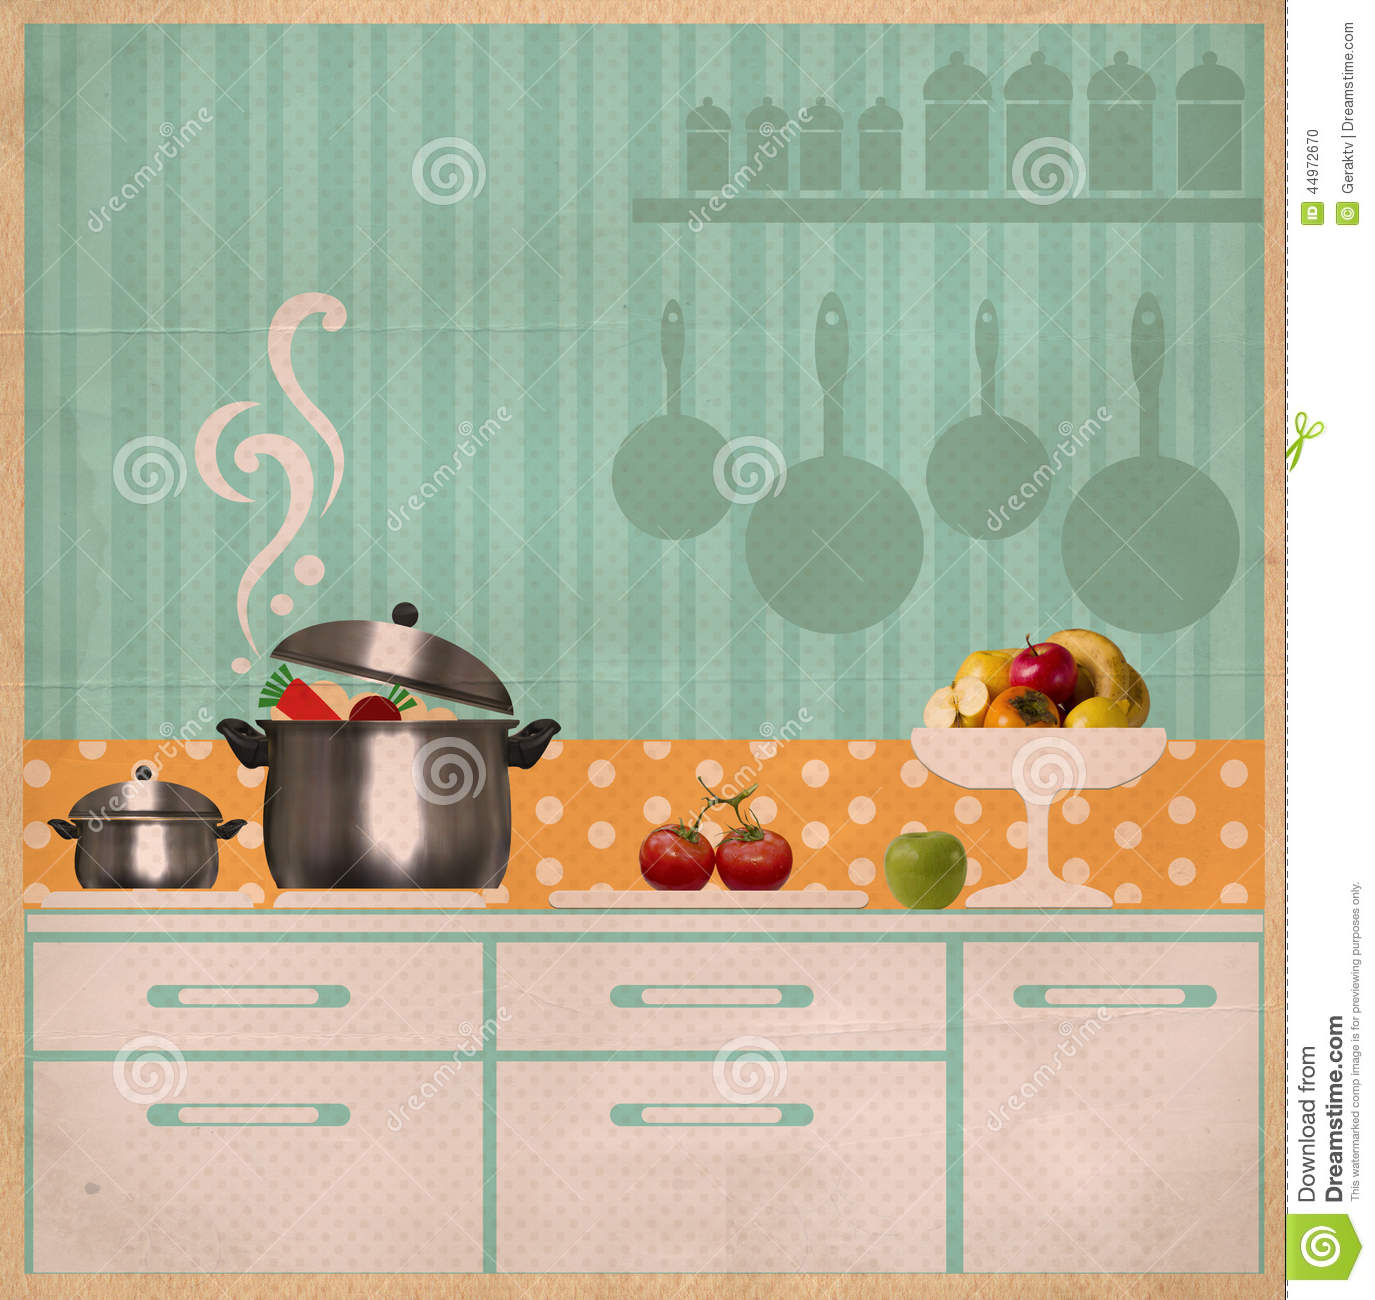 Kitchen Interior Collage.Retro Card On Old Paper Stock Illustration ...